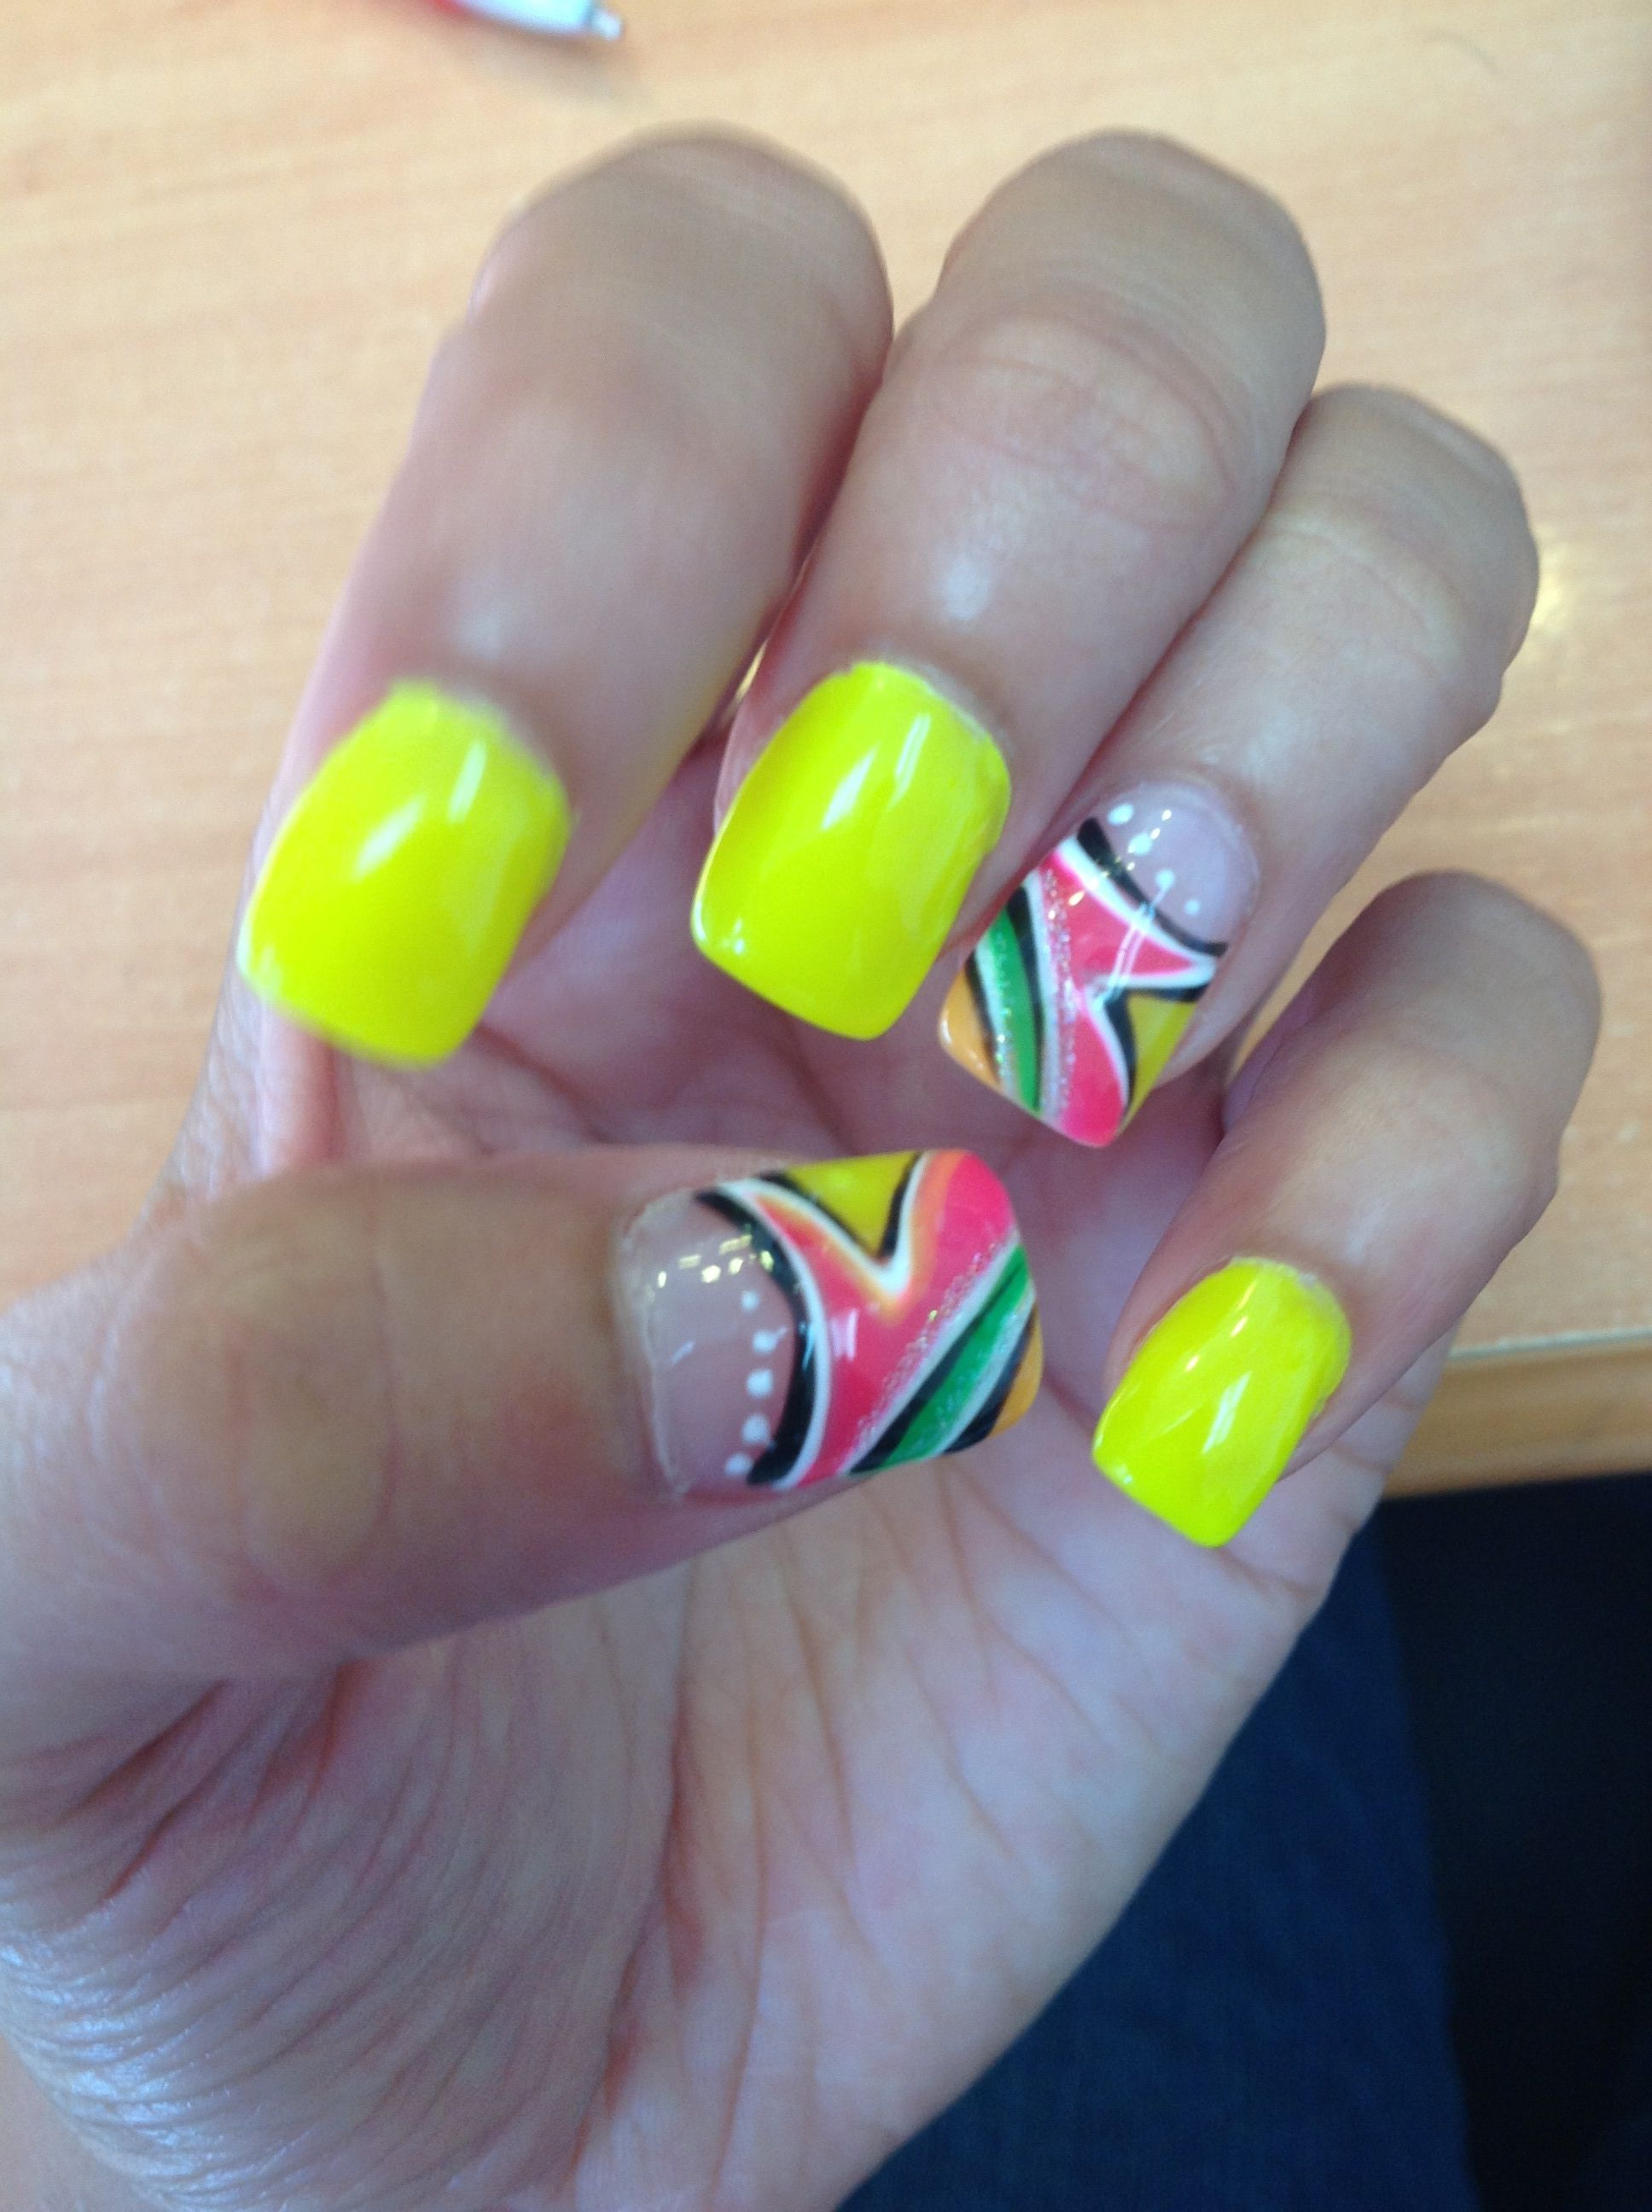 My neon yellow gel nails for July 2013 | Prom:) | Pinterest